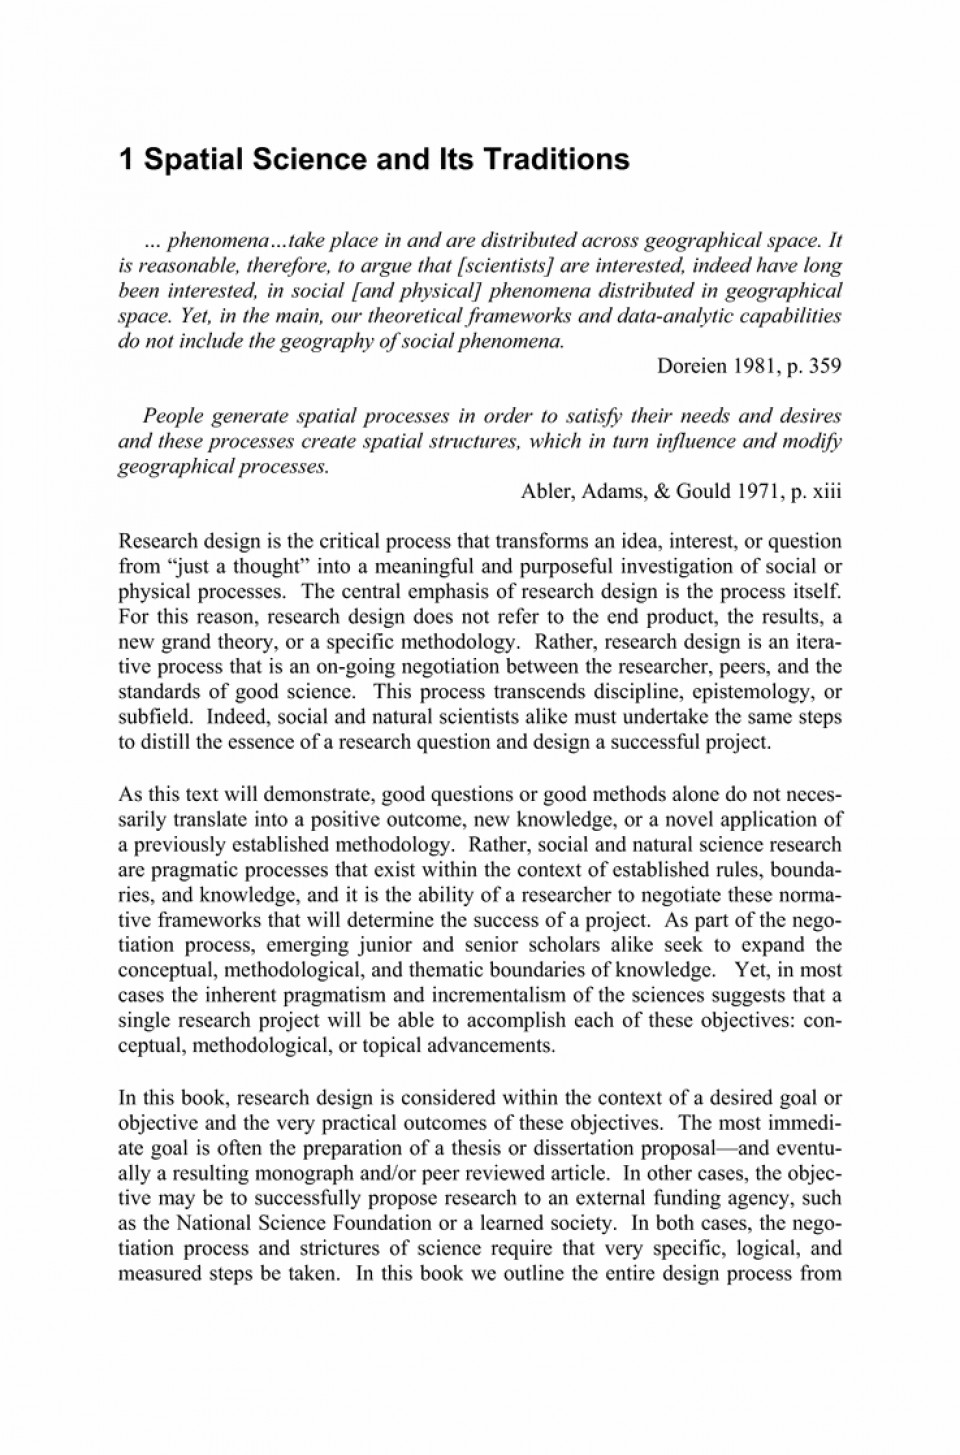 004 Research Paper How To Write Scientific Sensational Pdf And Publish A Computer Science 960